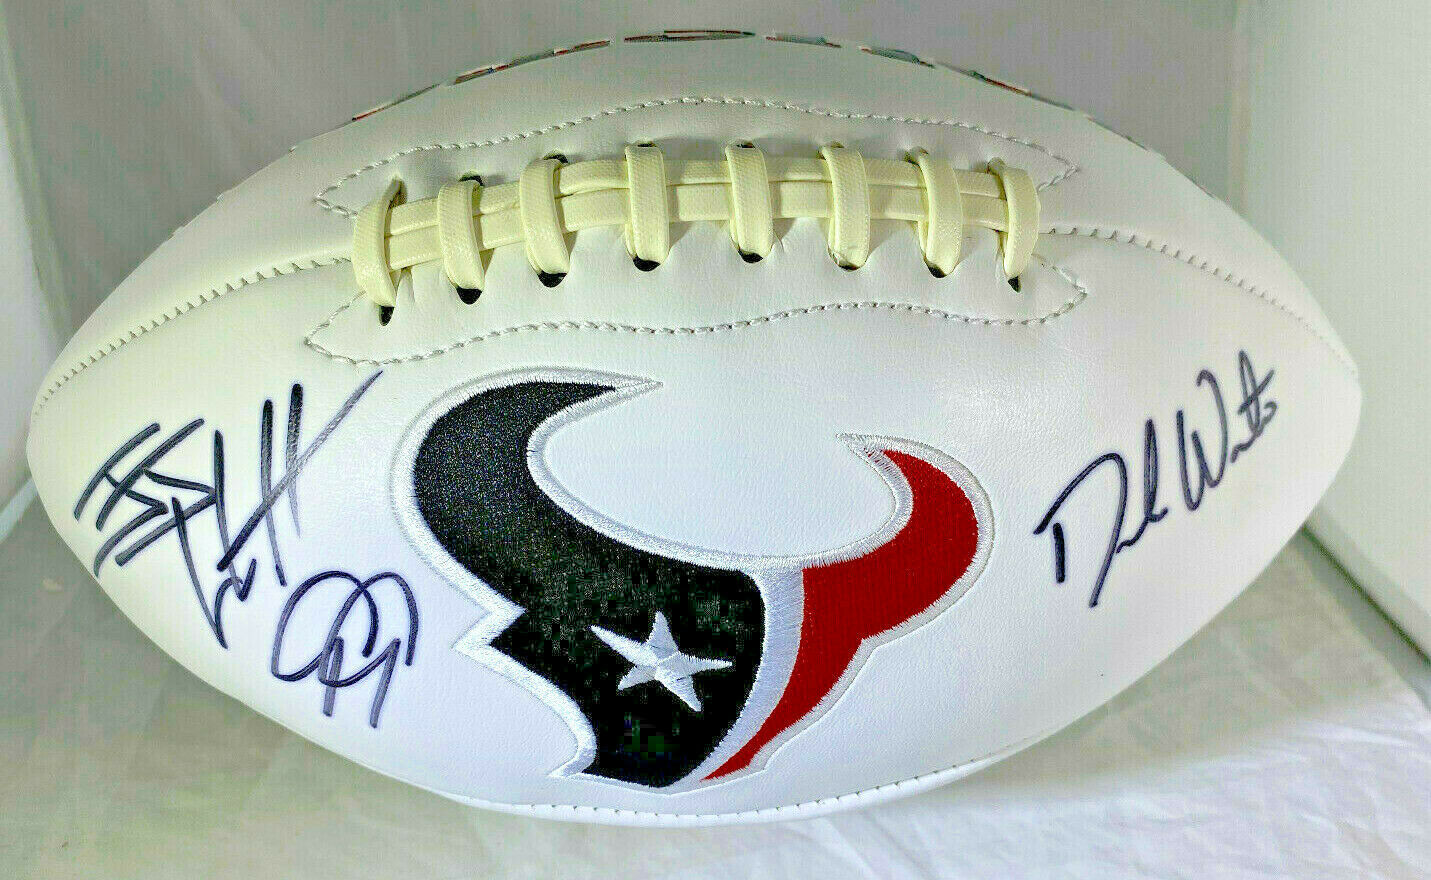 JJ WATT & DESHAUN WATSON / AUTOGRAPHED TEXANS WHITE PANEL FOOTBALL / PLAYER HOLO